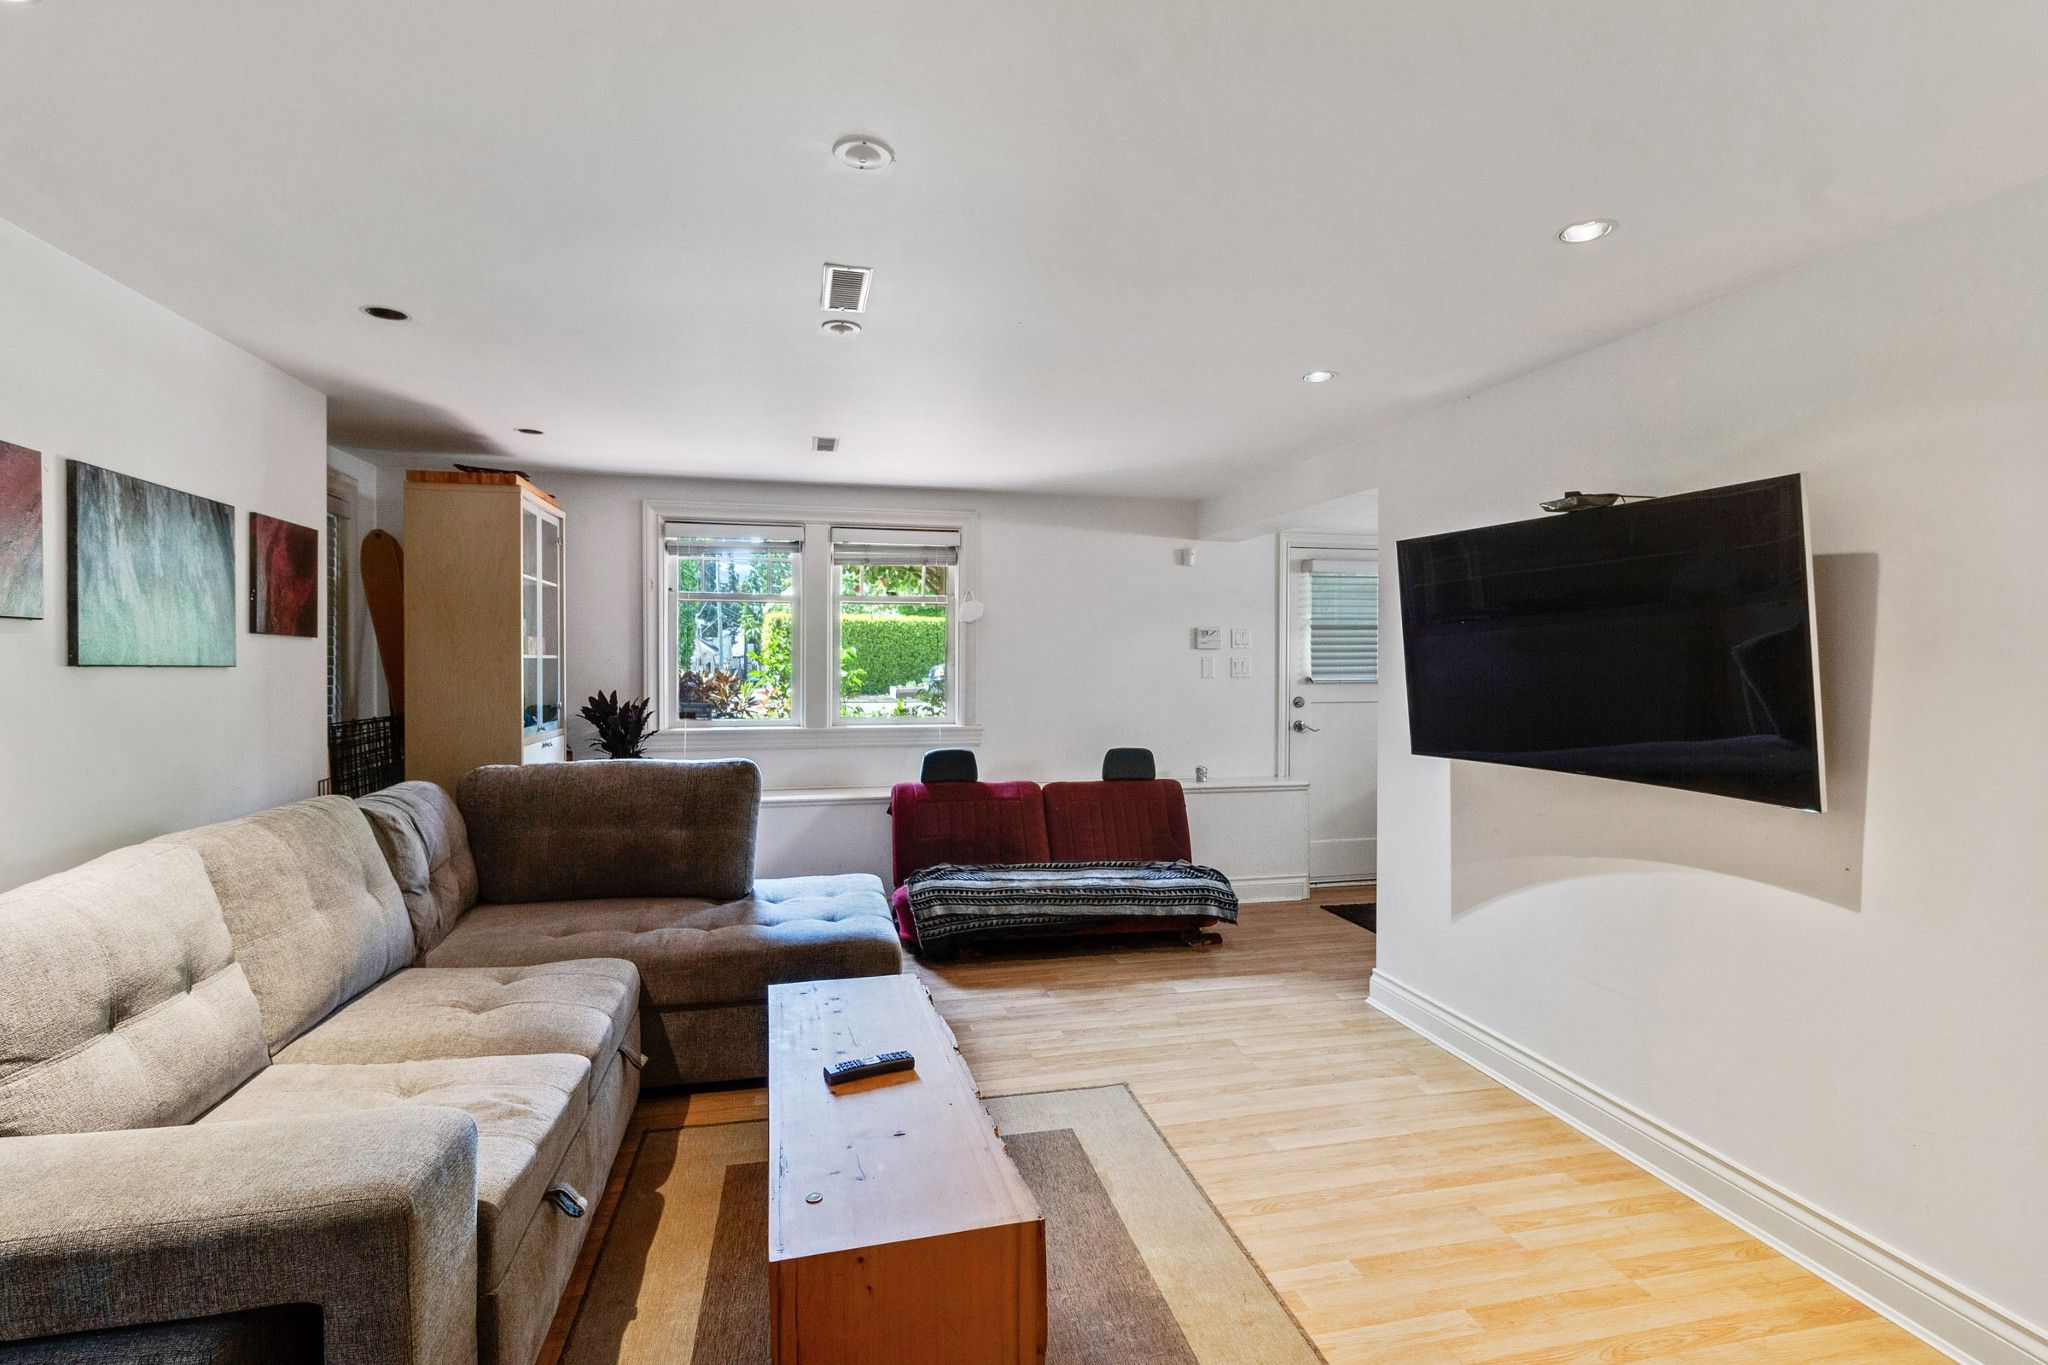 Photo 14: Photos: 3742 ONTARIO Street in Vancouver: Main House for sale (Vancouver East)  : MLS®# R2580004